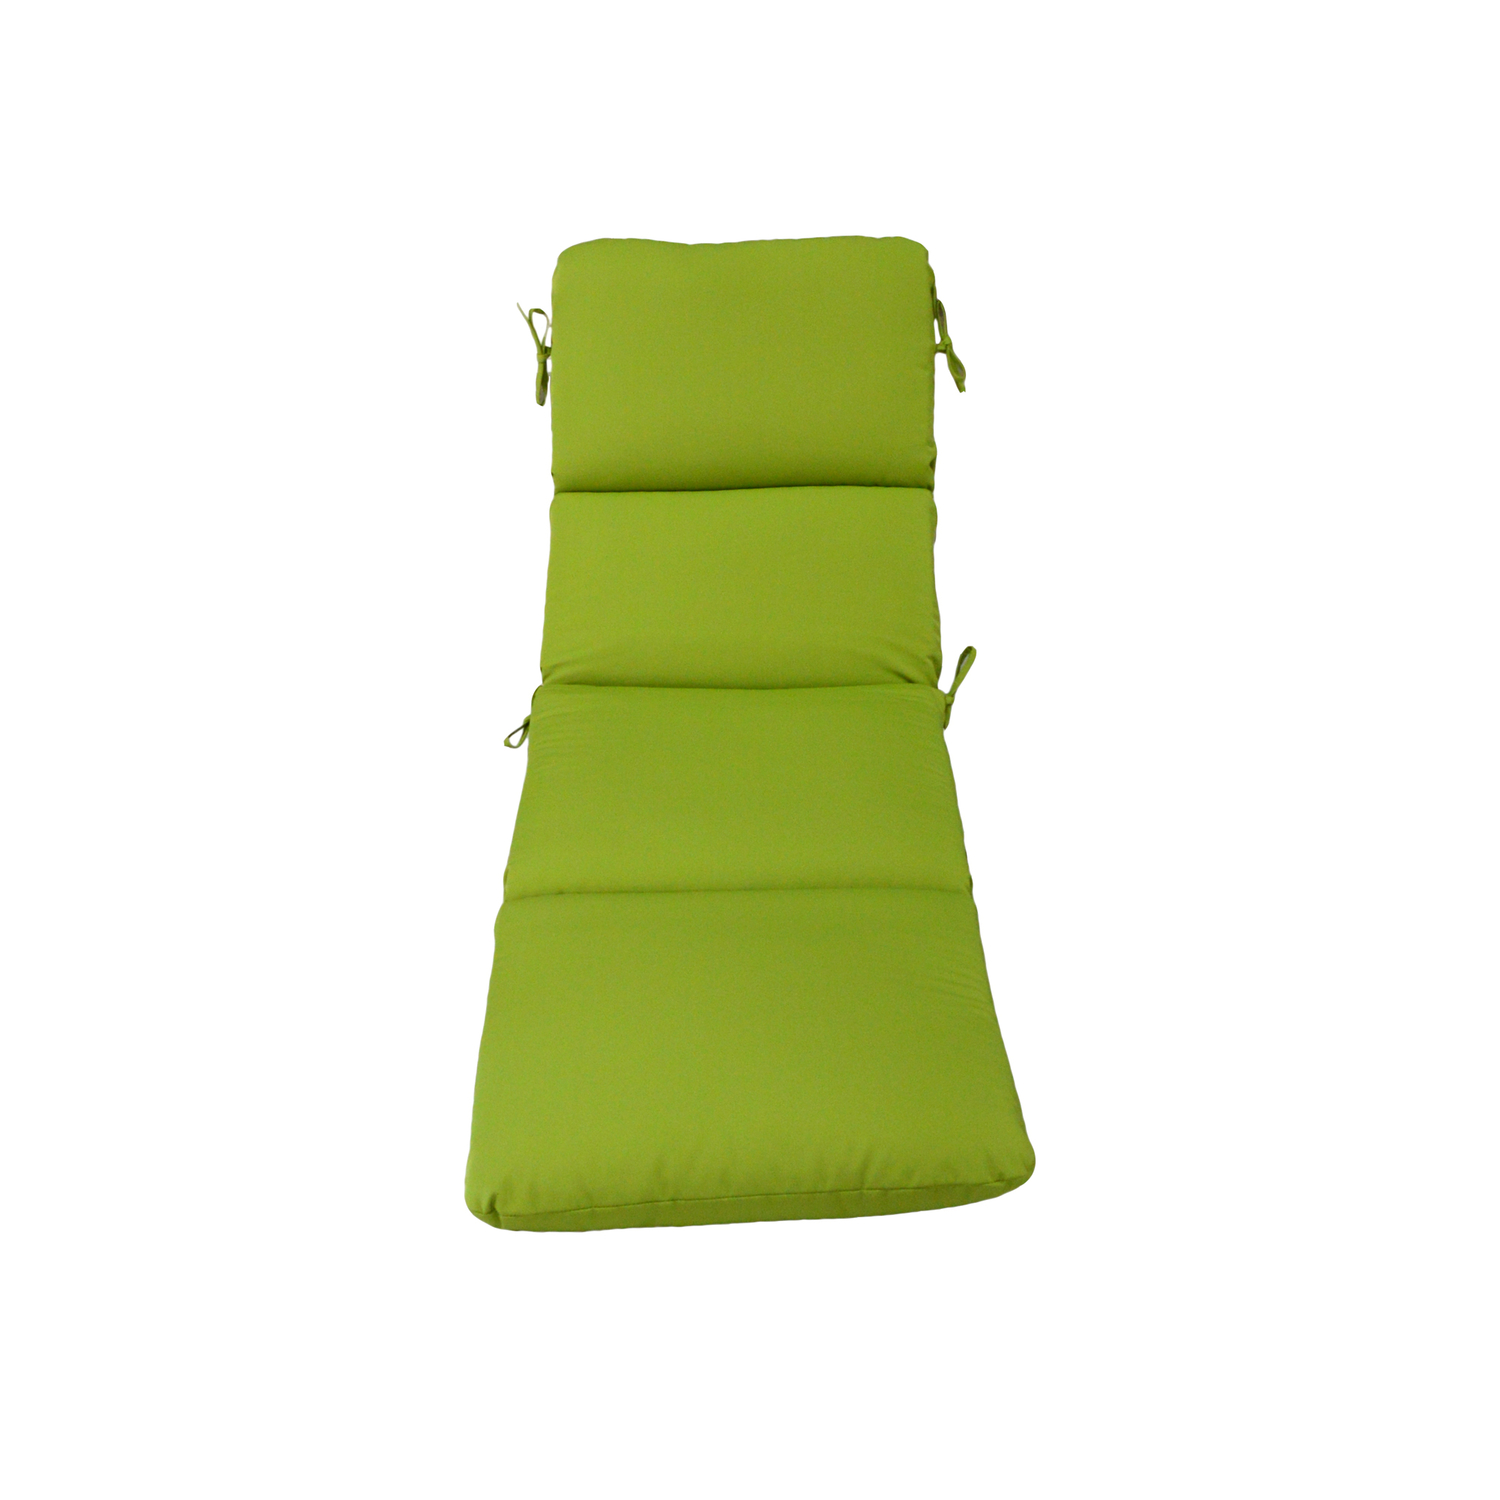 Casual Cushion  Gray/Lime  Polyester  Seating Cushion  23 in. 3.5 in. 74 in.